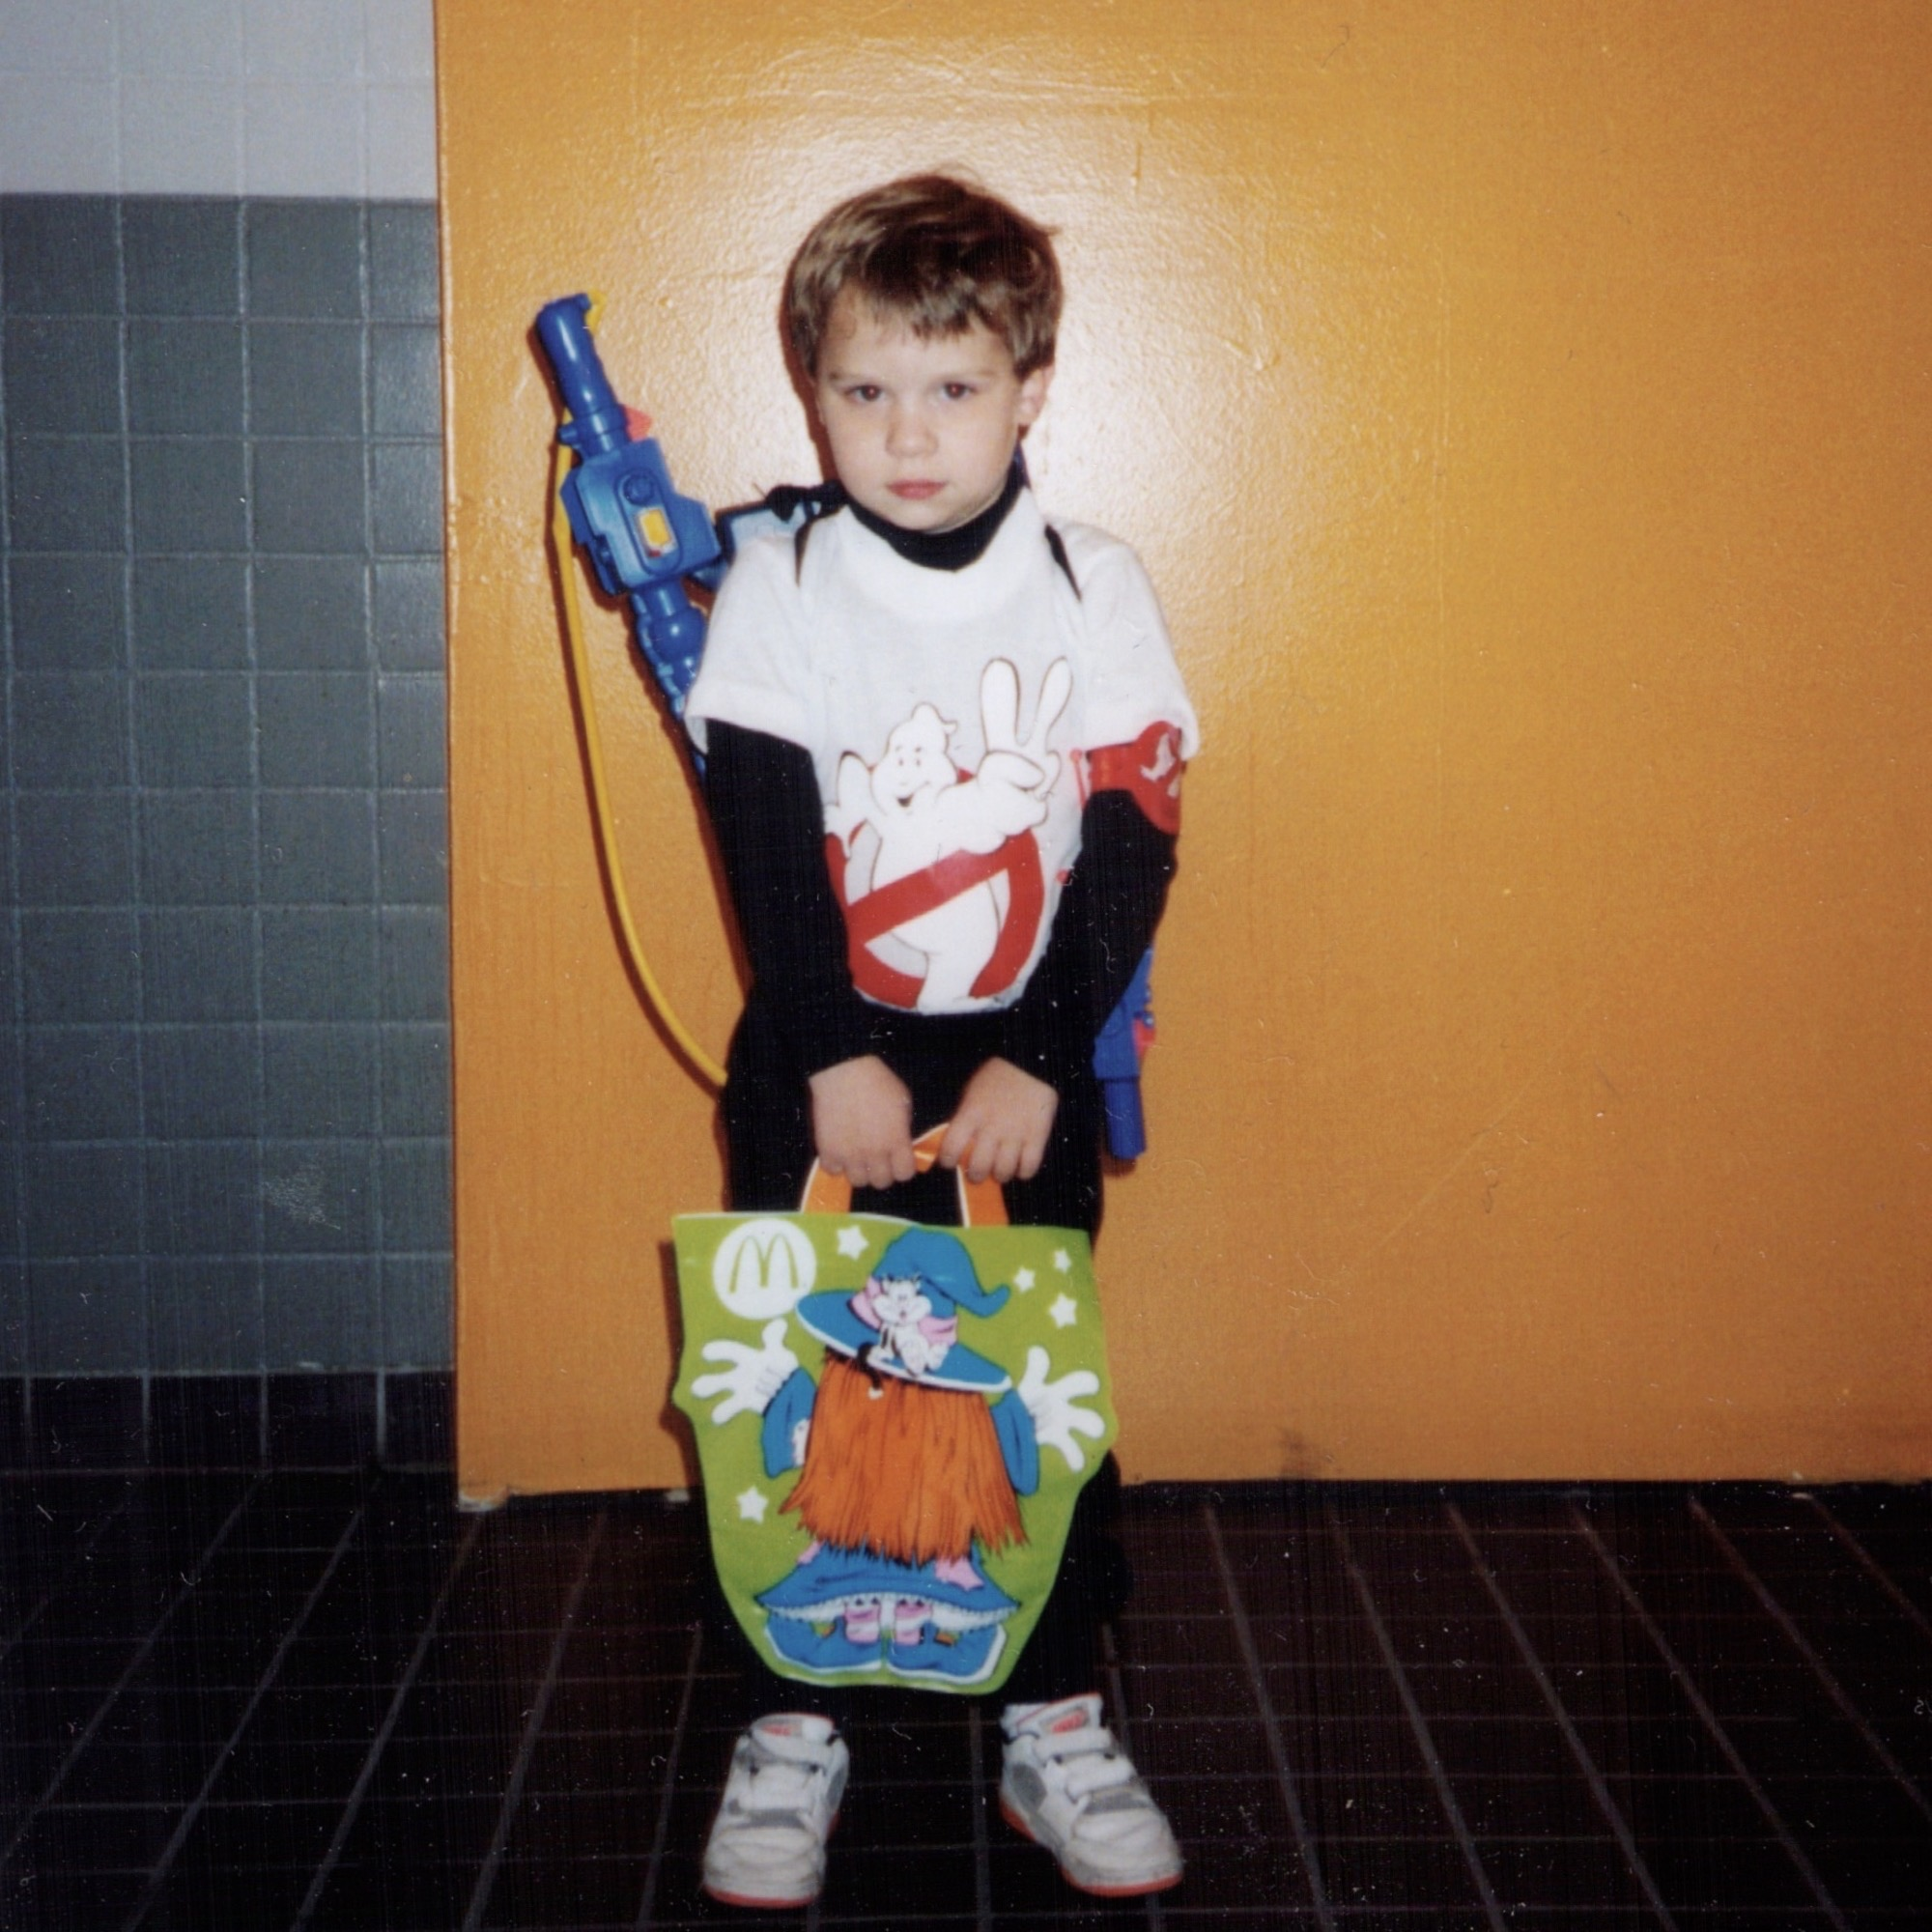 A Young Ghostbuster